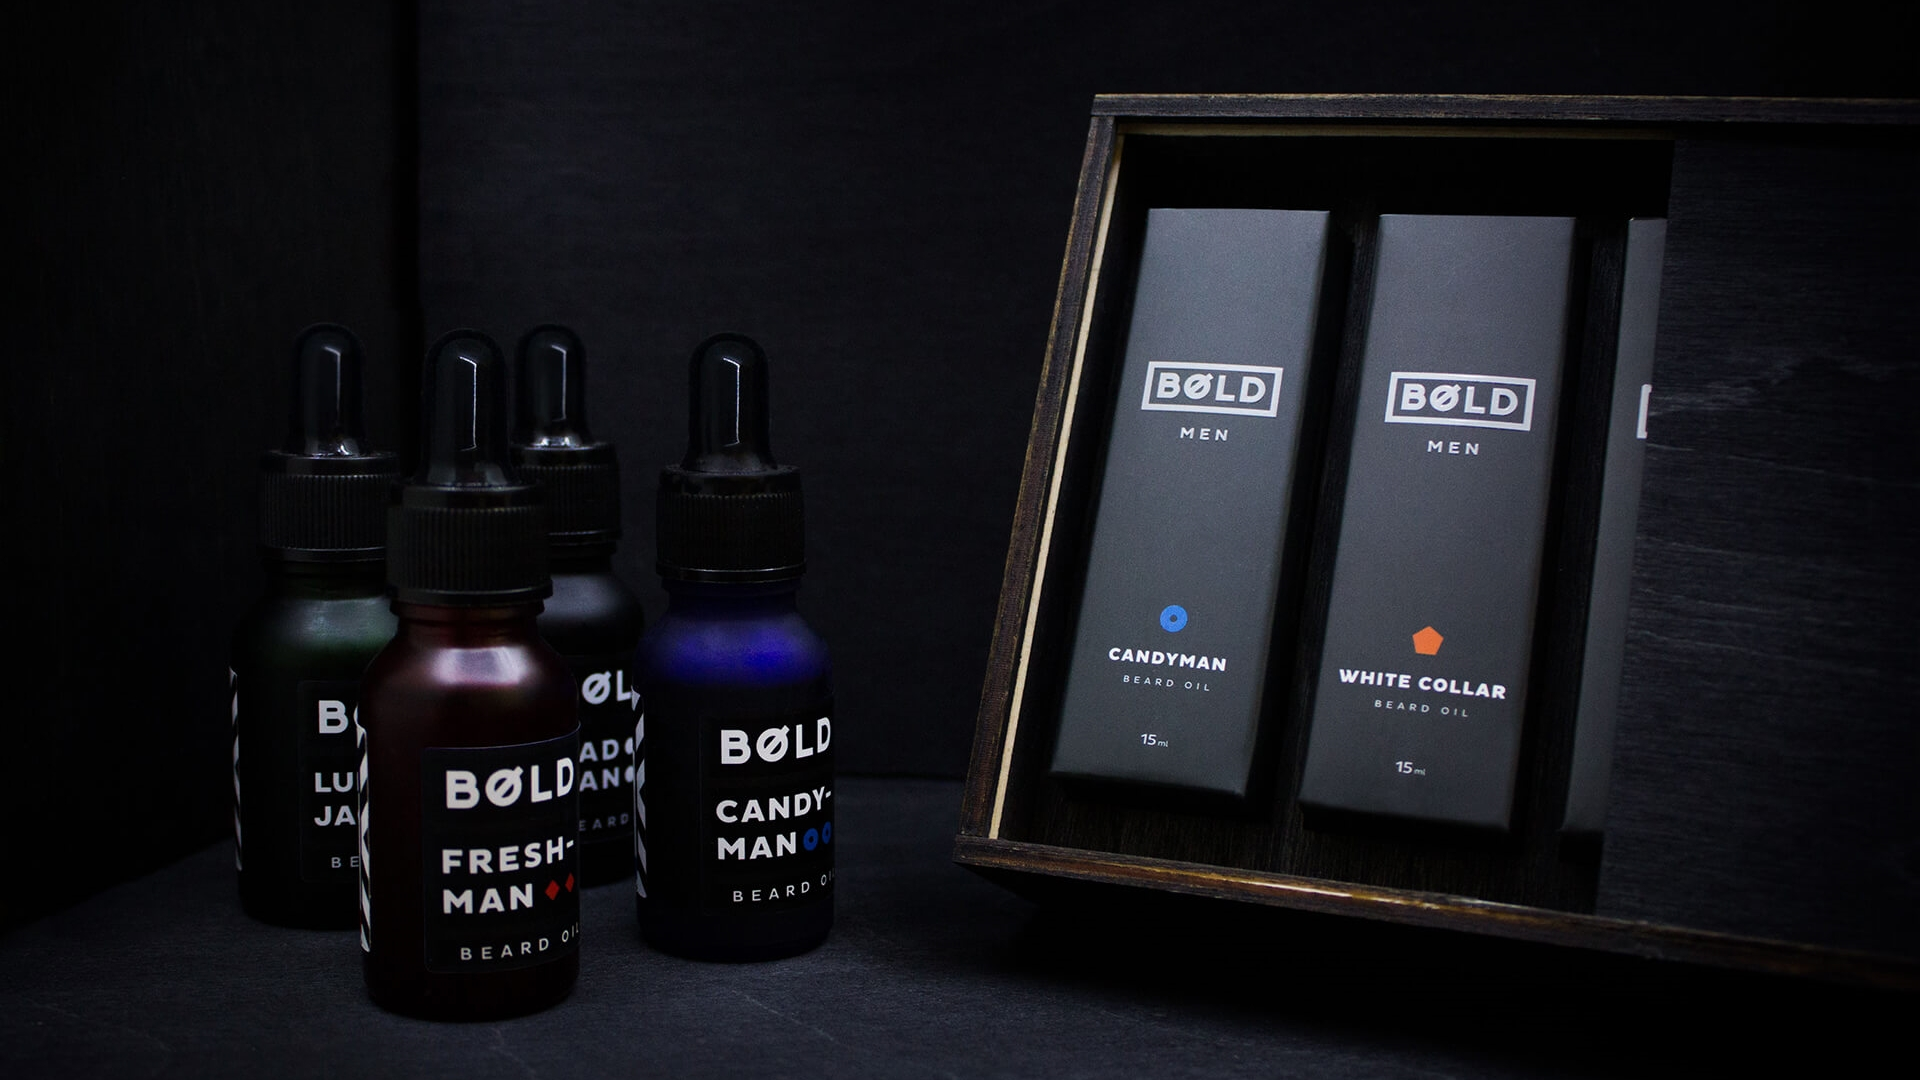 Branding & Packaging Design by maugli